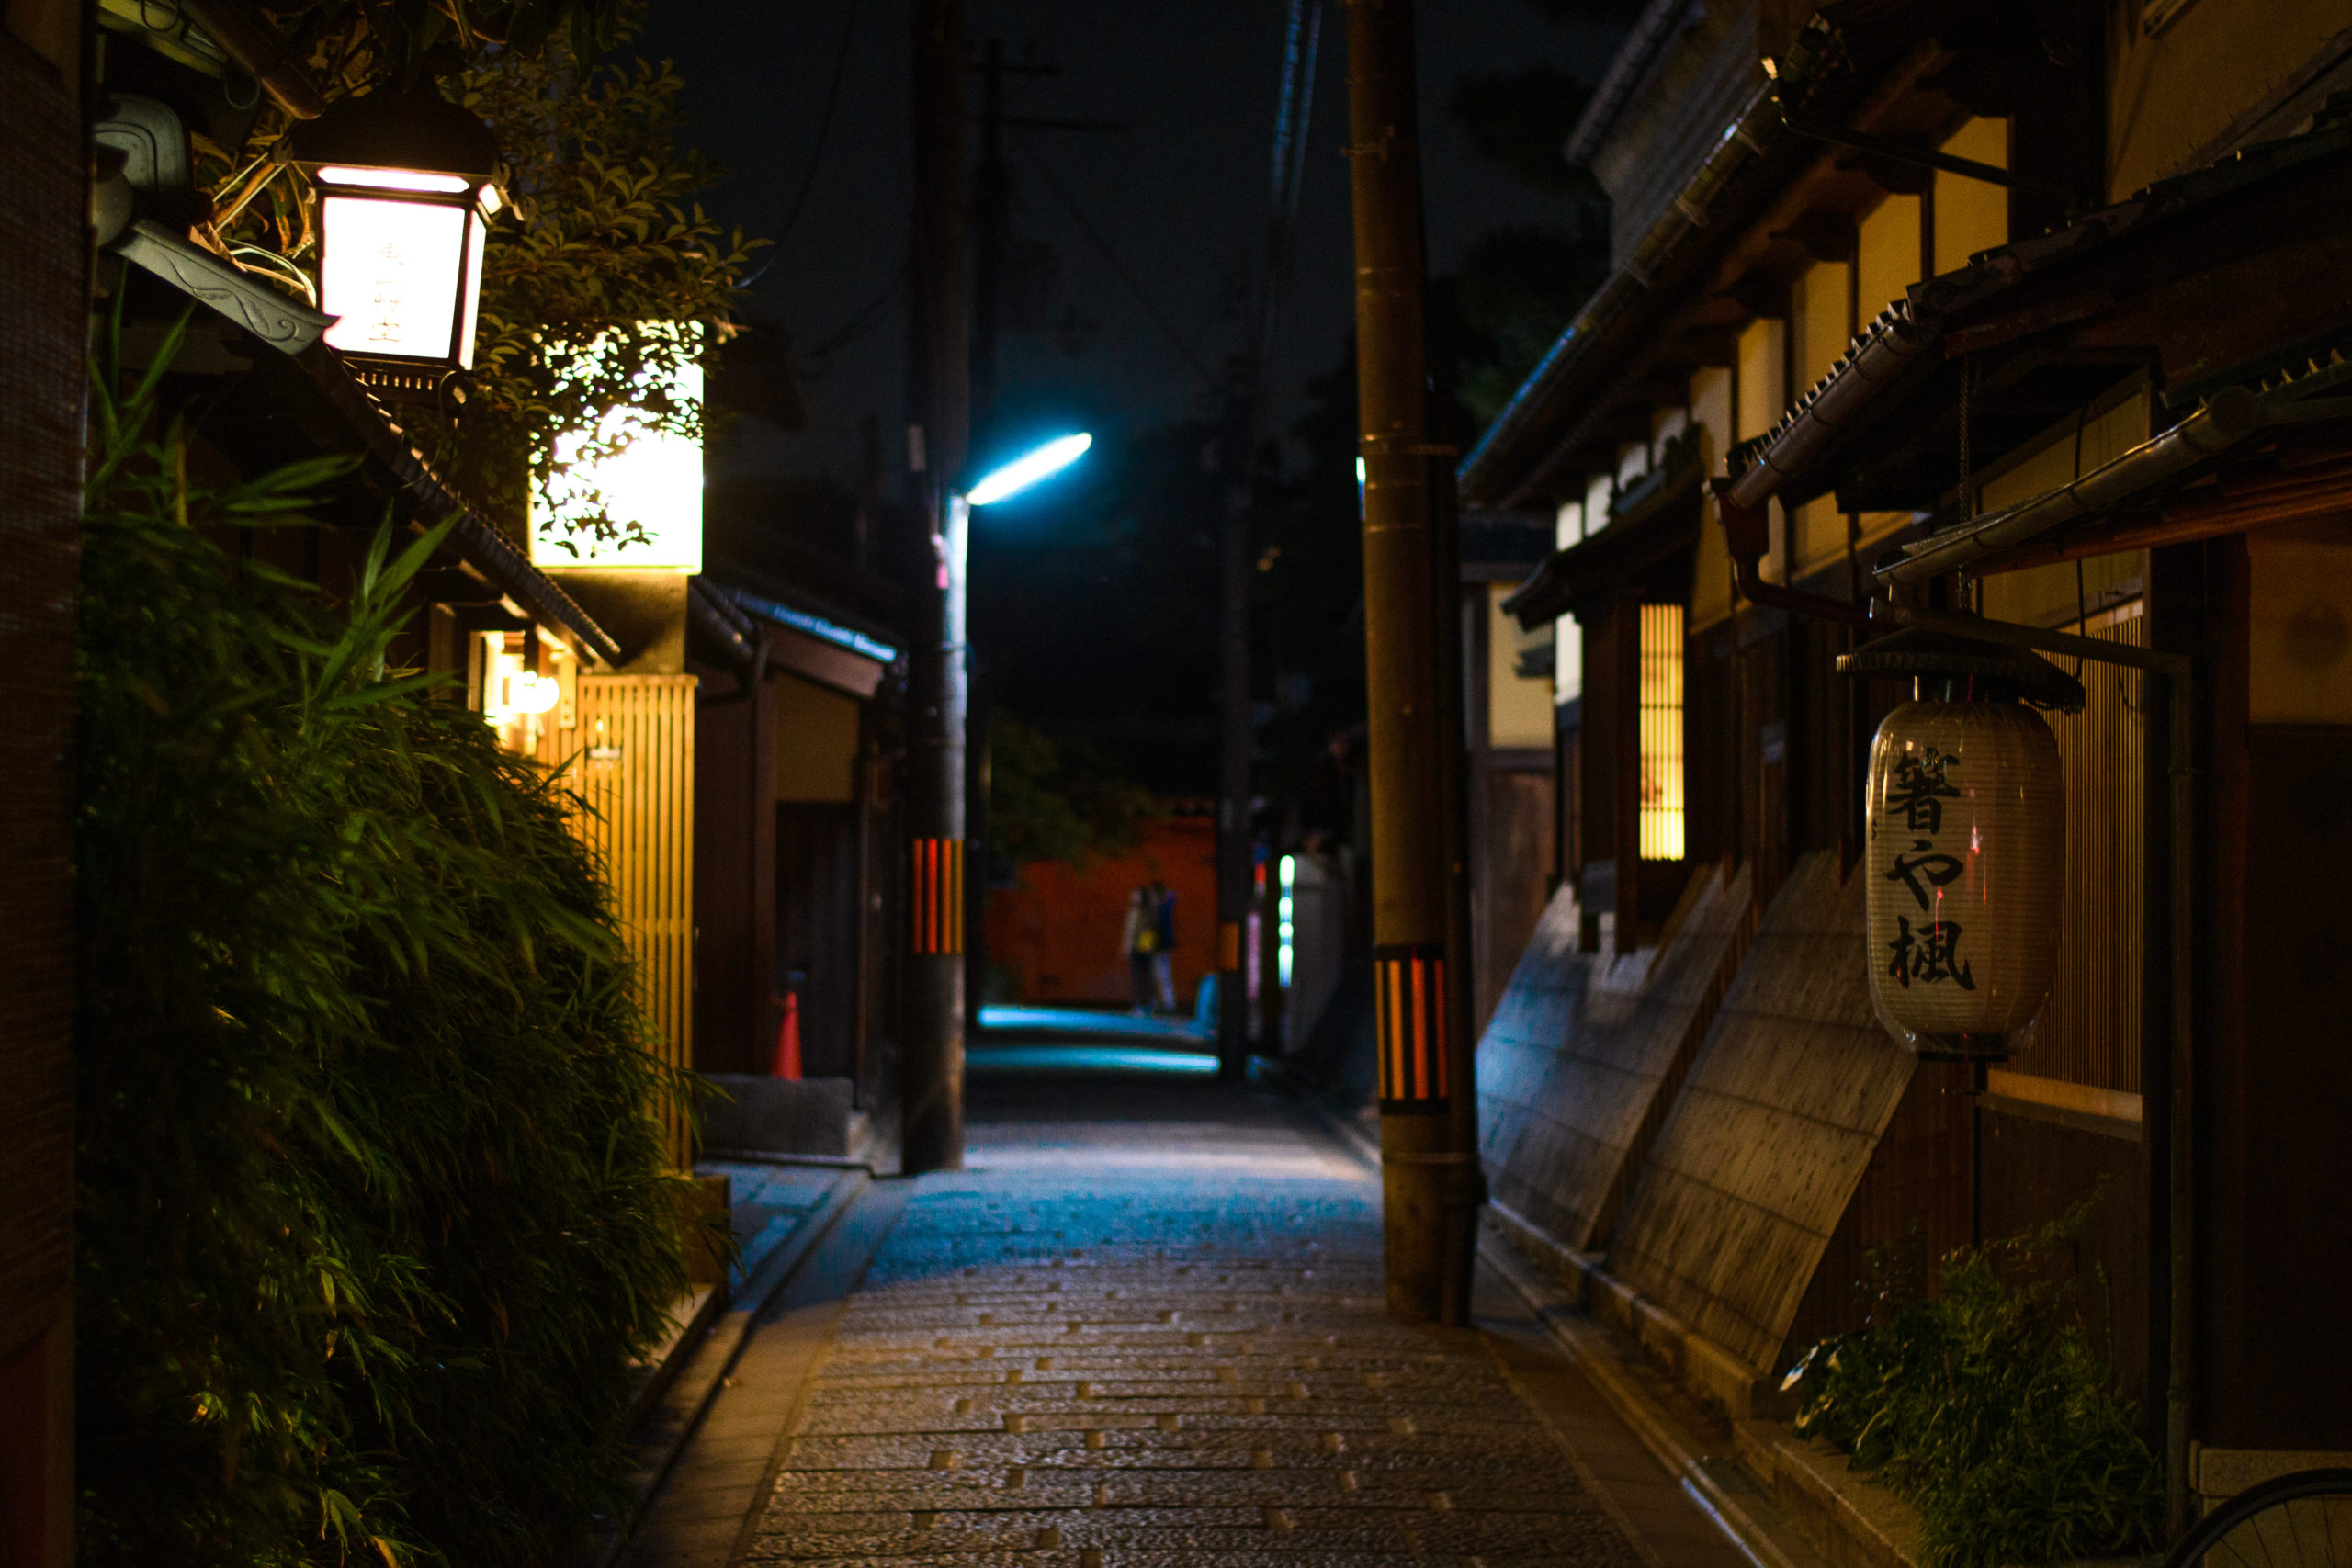 Kyoto Streets, by John Monarch